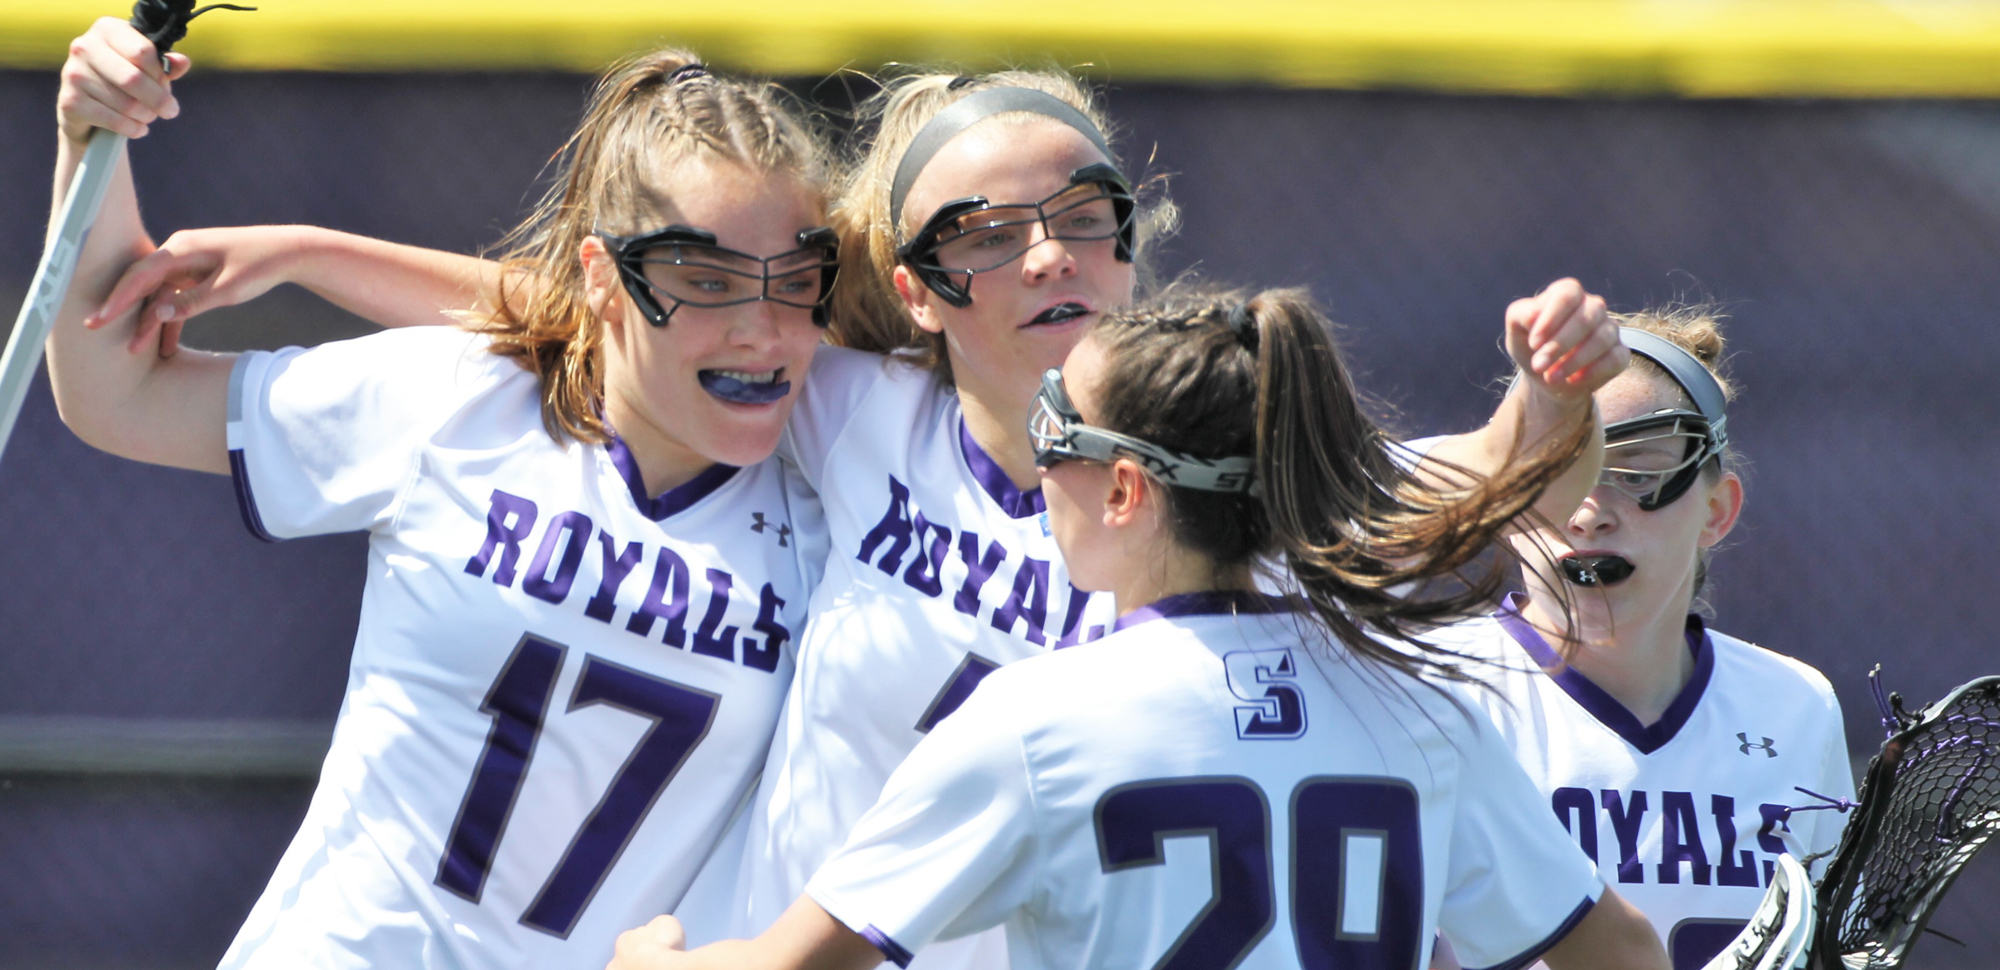 The University of Scranton women's lacrosse hosts a Landmark Conference semifinal playoff game for the third straight season on Wednesday, as the second-seeded Royals take on third-seed Moravian. © Photo by Timothy R. Dougherty / doubleeaglephotography.com